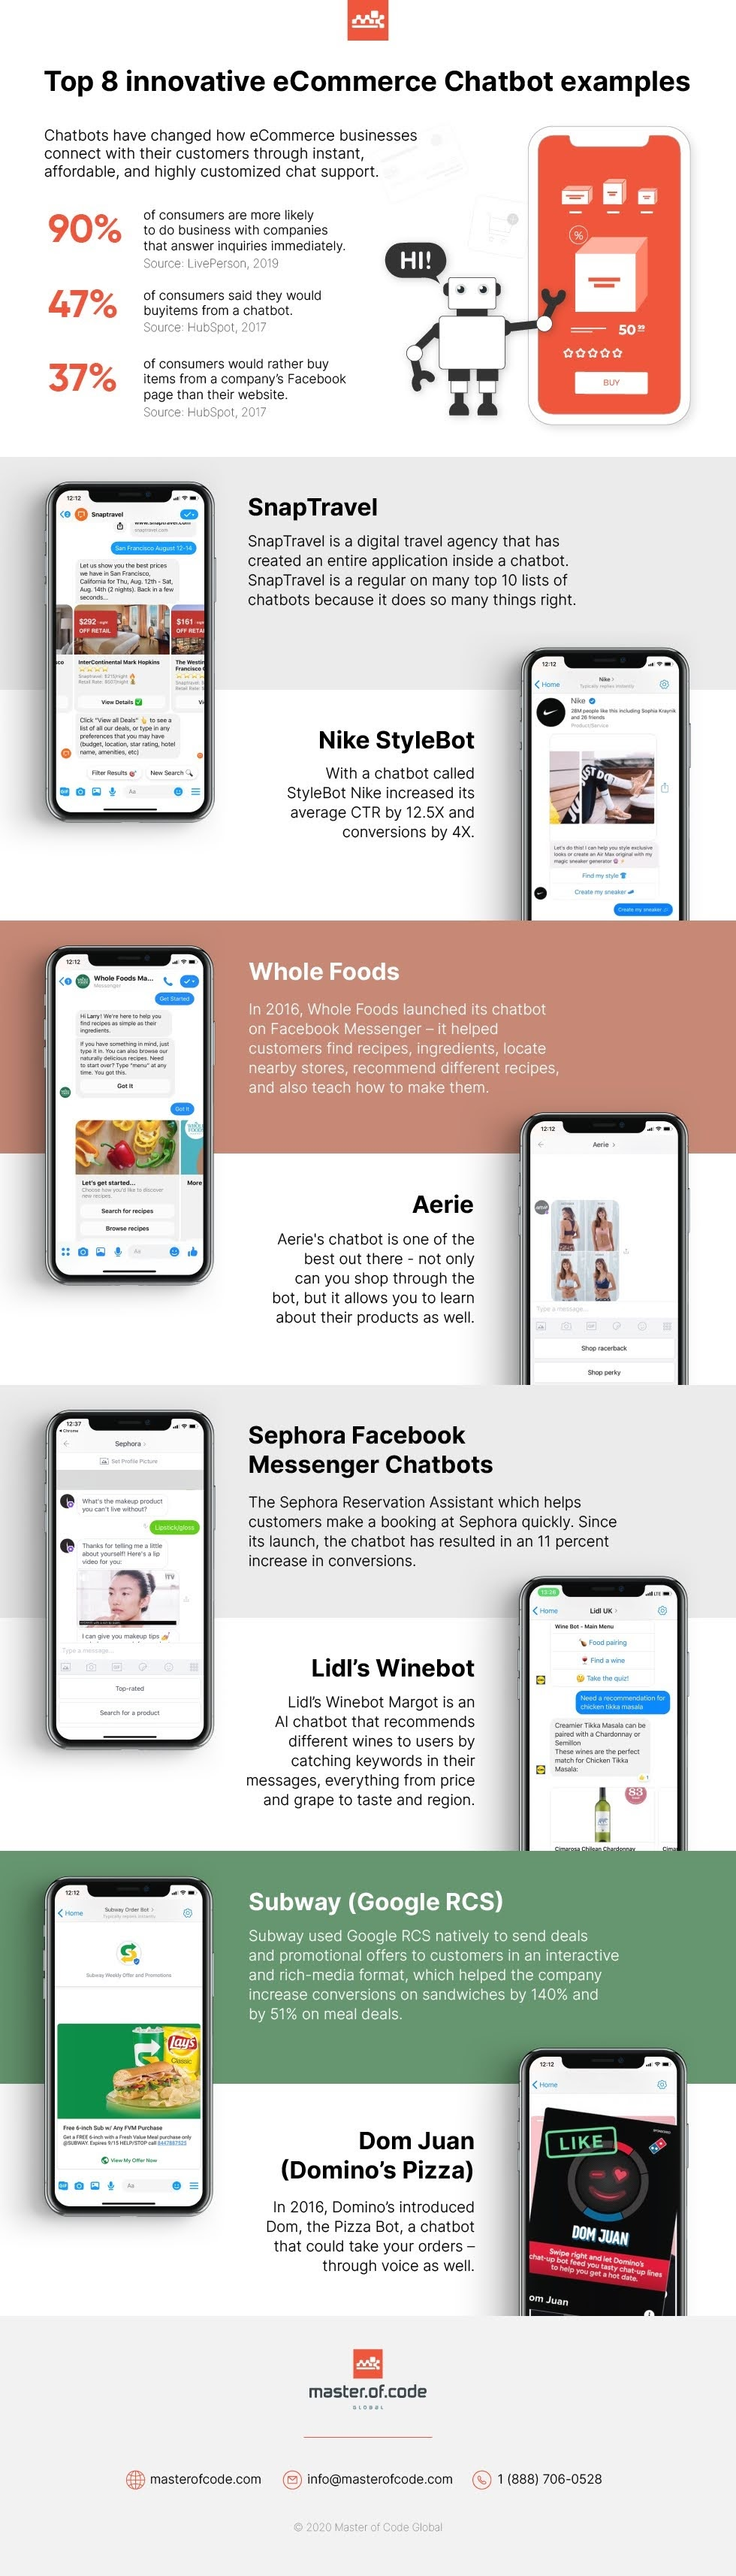 Top 8 Examples of Chatbots in the eCommerce Industry in 2020 #infographic